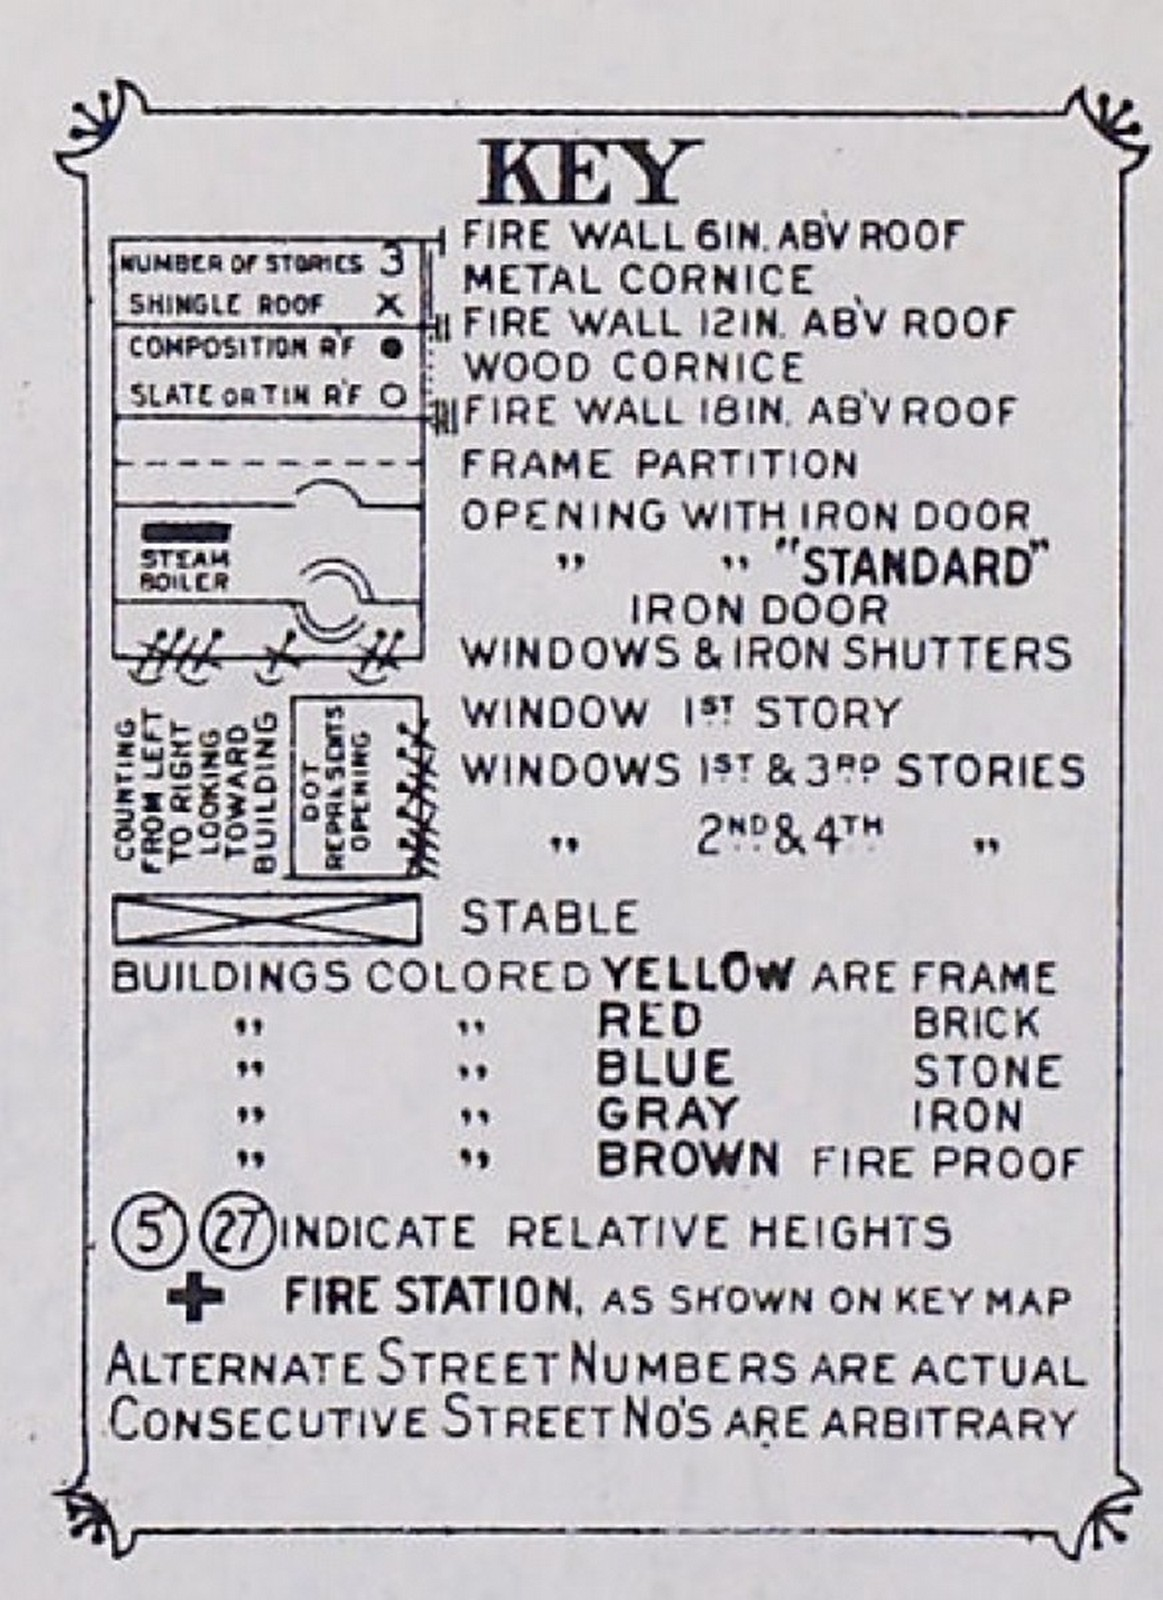 Culver Index - 1914 Sanborn Fire Map - History and Genealogy ... on colorado geography, colorado marble, colorado history, colorado aspen loop trail map, colorado photography, colorado postcards, colorado railroads,